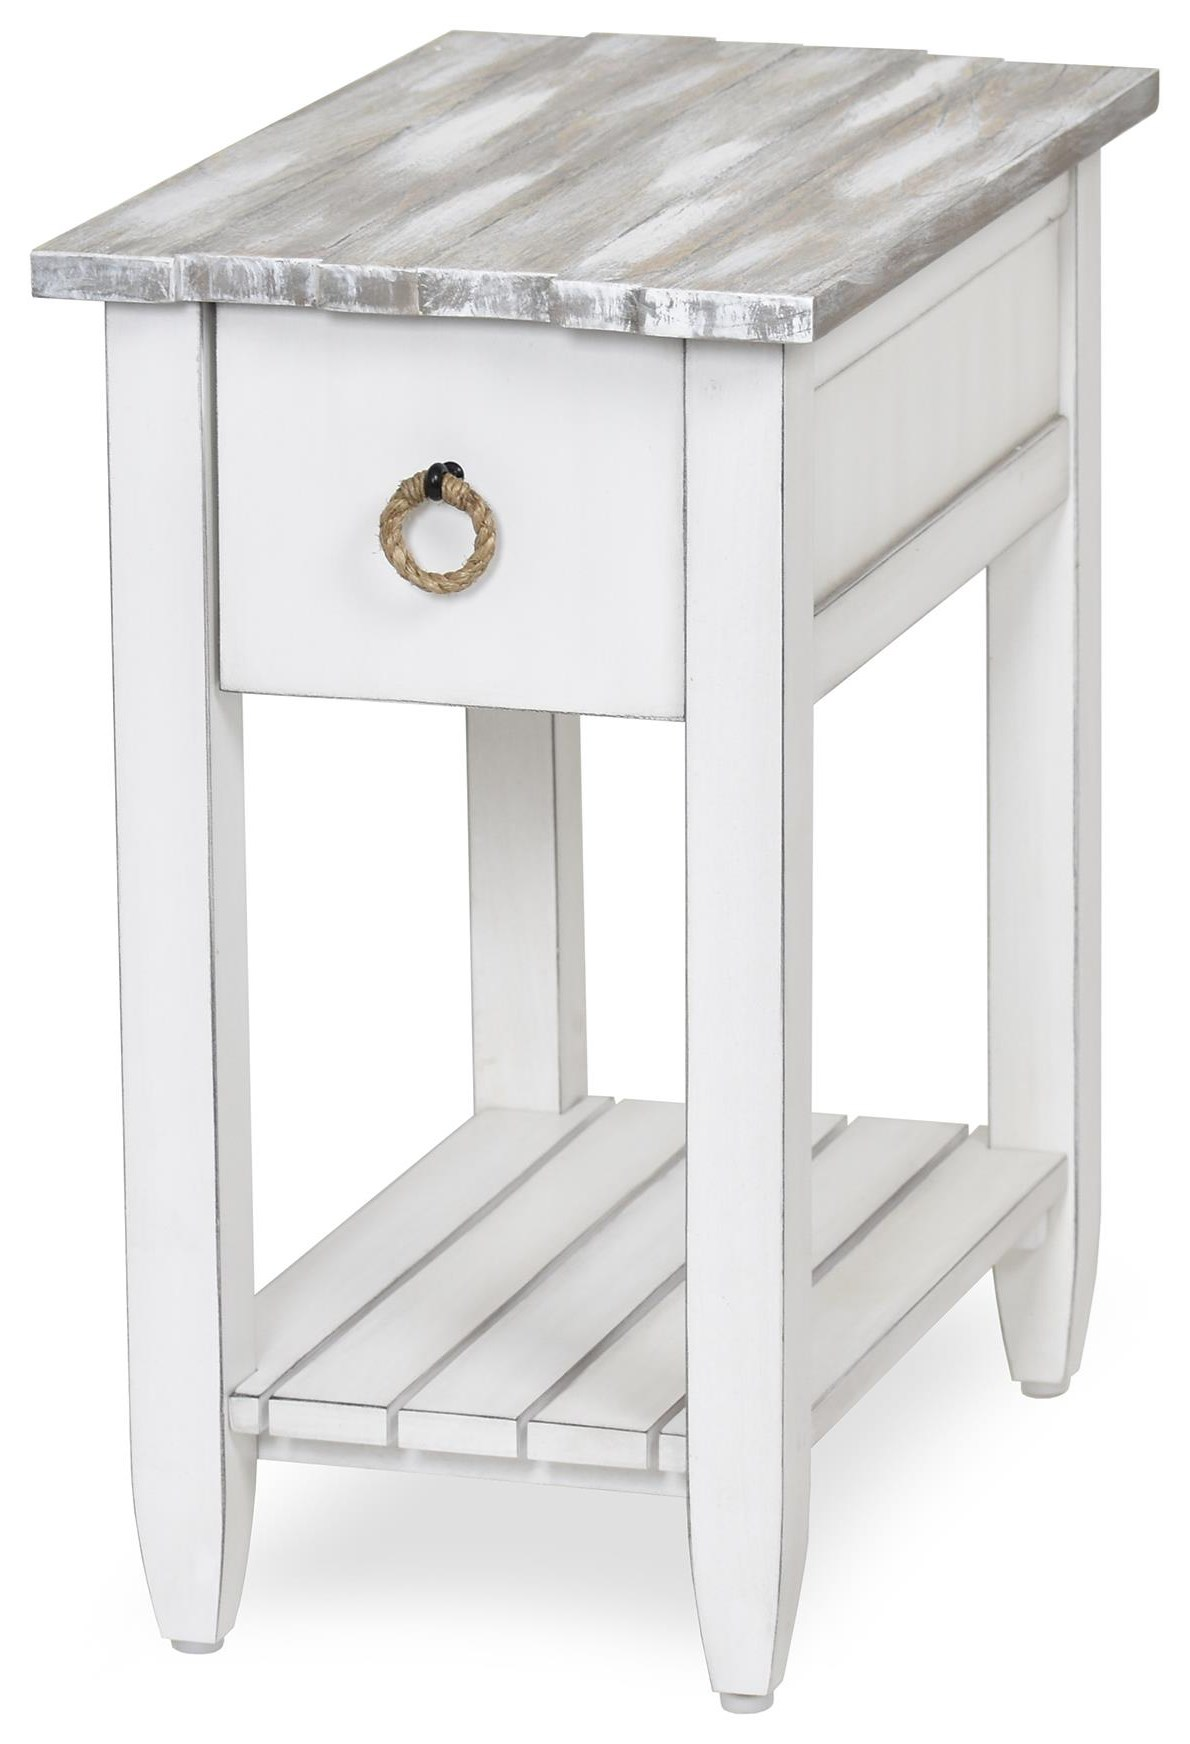 picket fence chair side table by Sea Winds Trading Company at Johnny Janosik